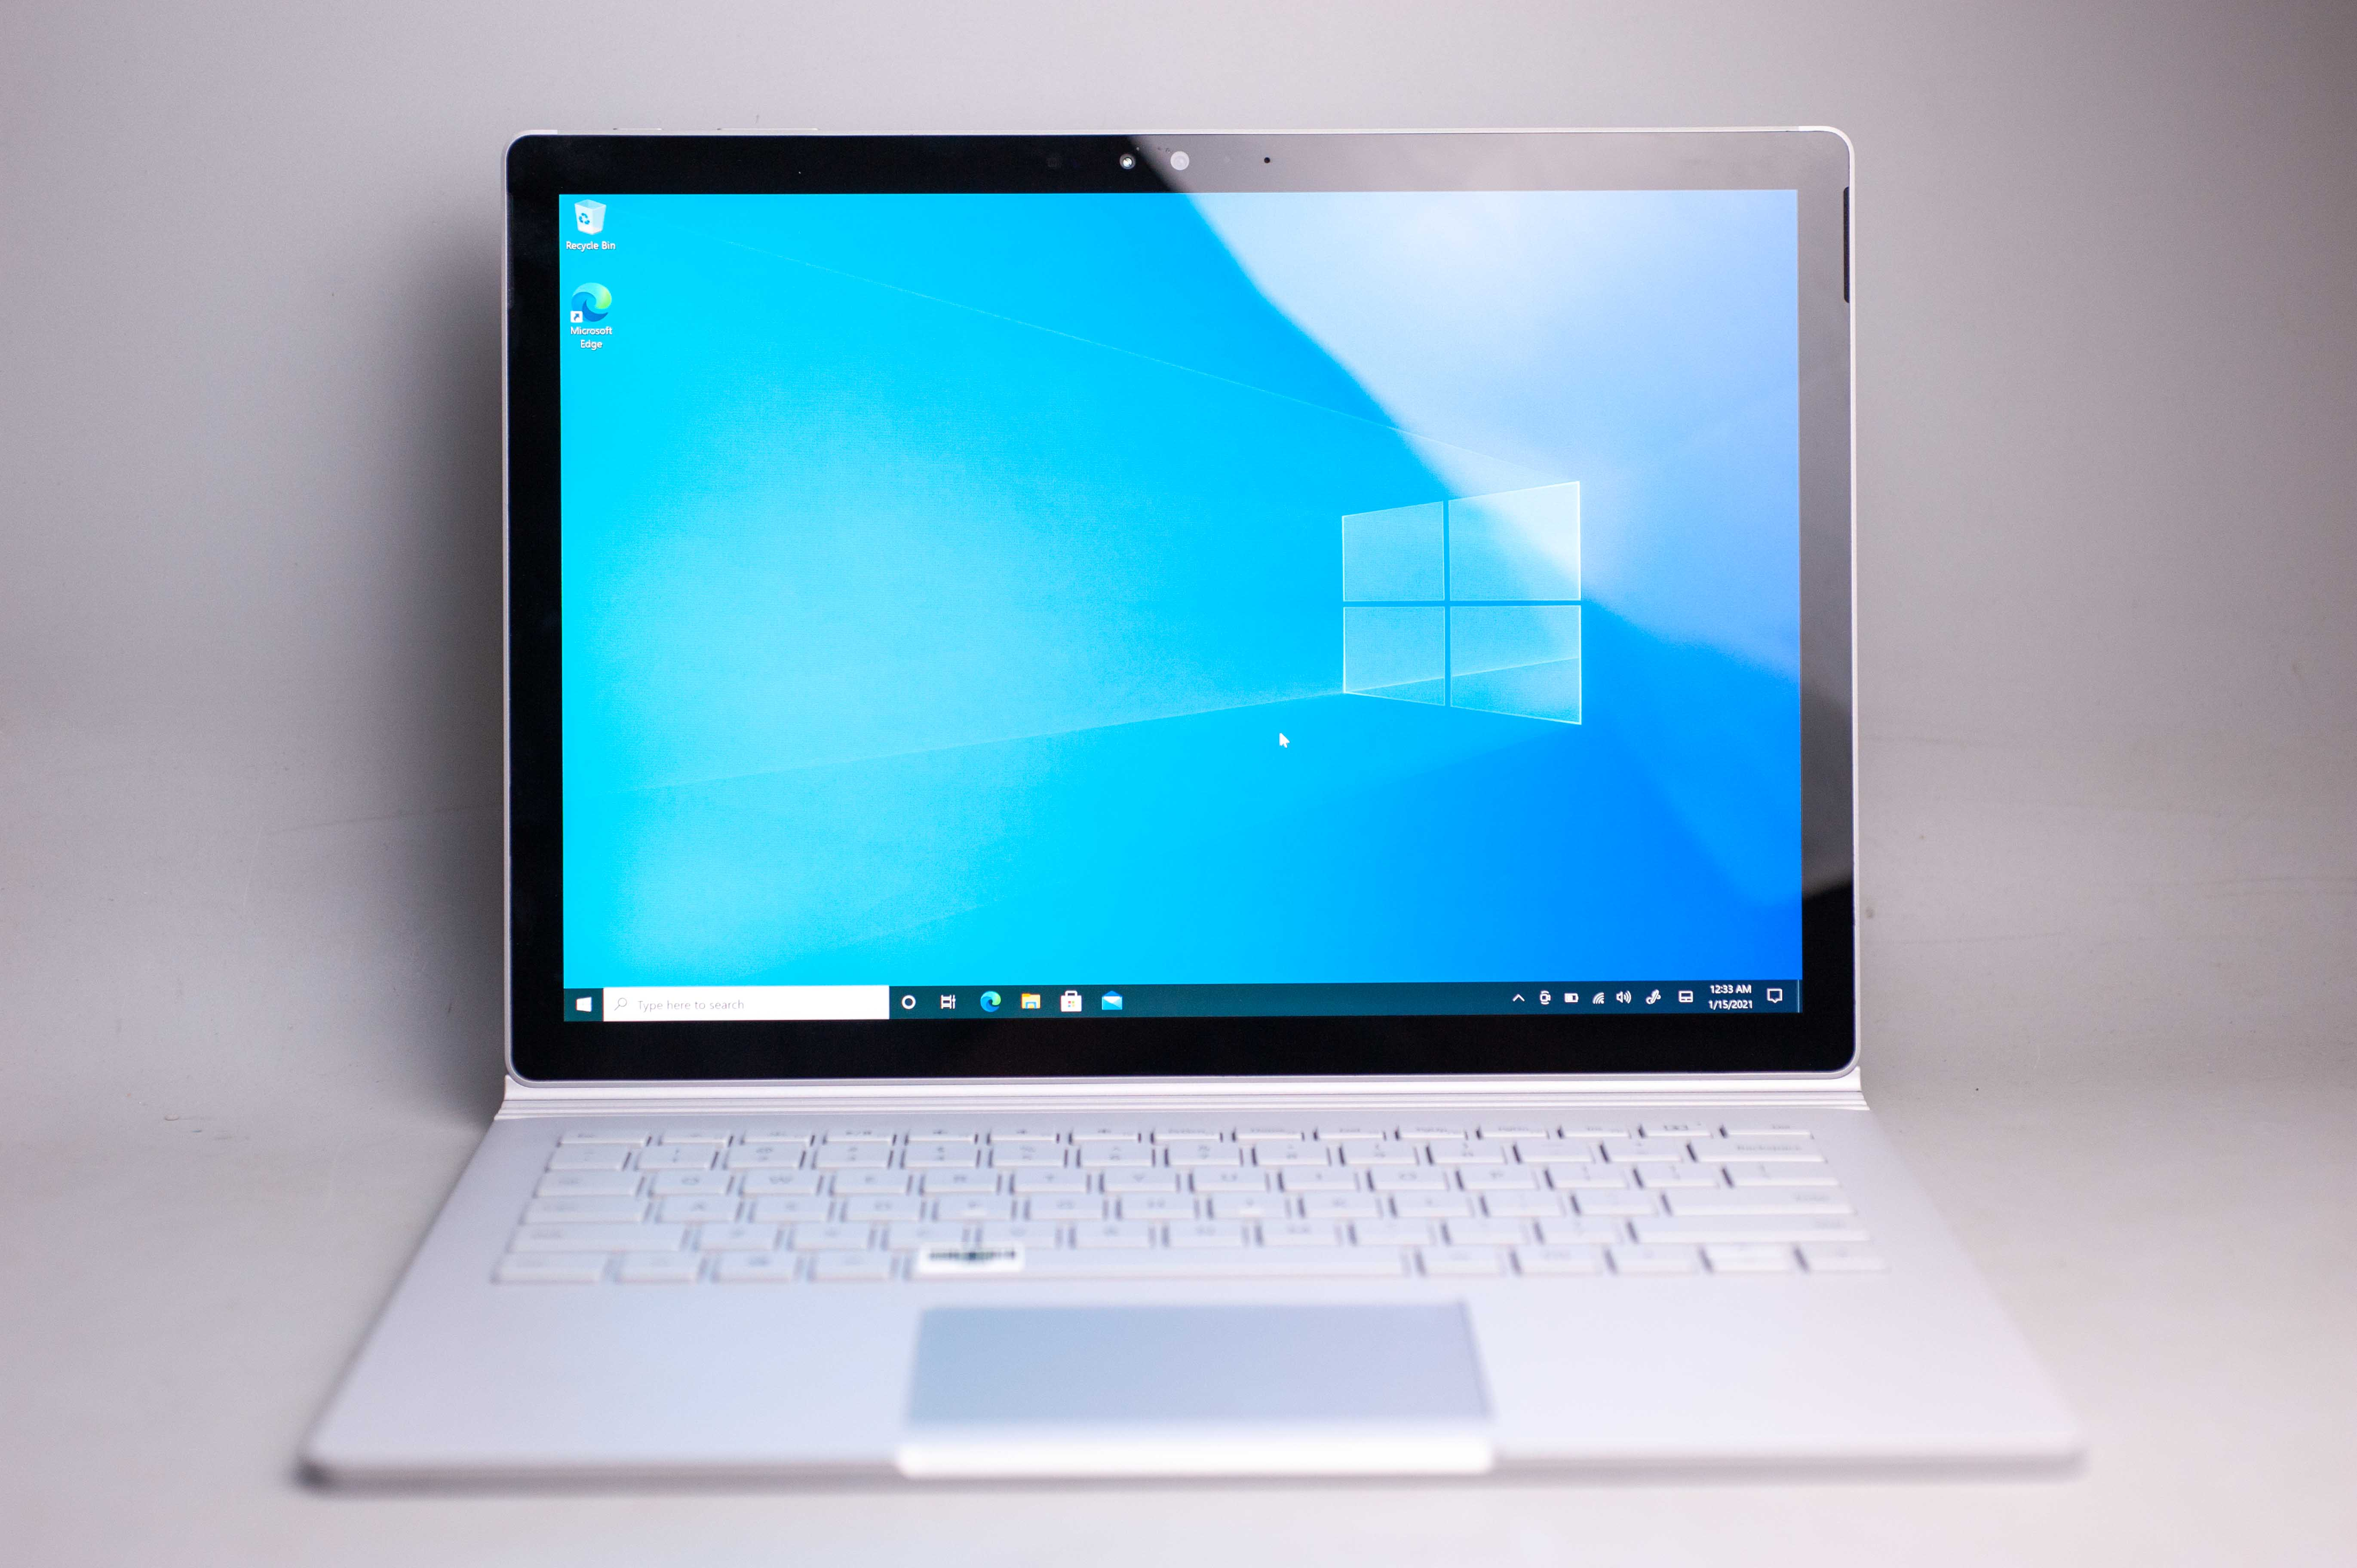 surface-book-ssd-128gb-core-i5-ram-8gb-18284-98-18284